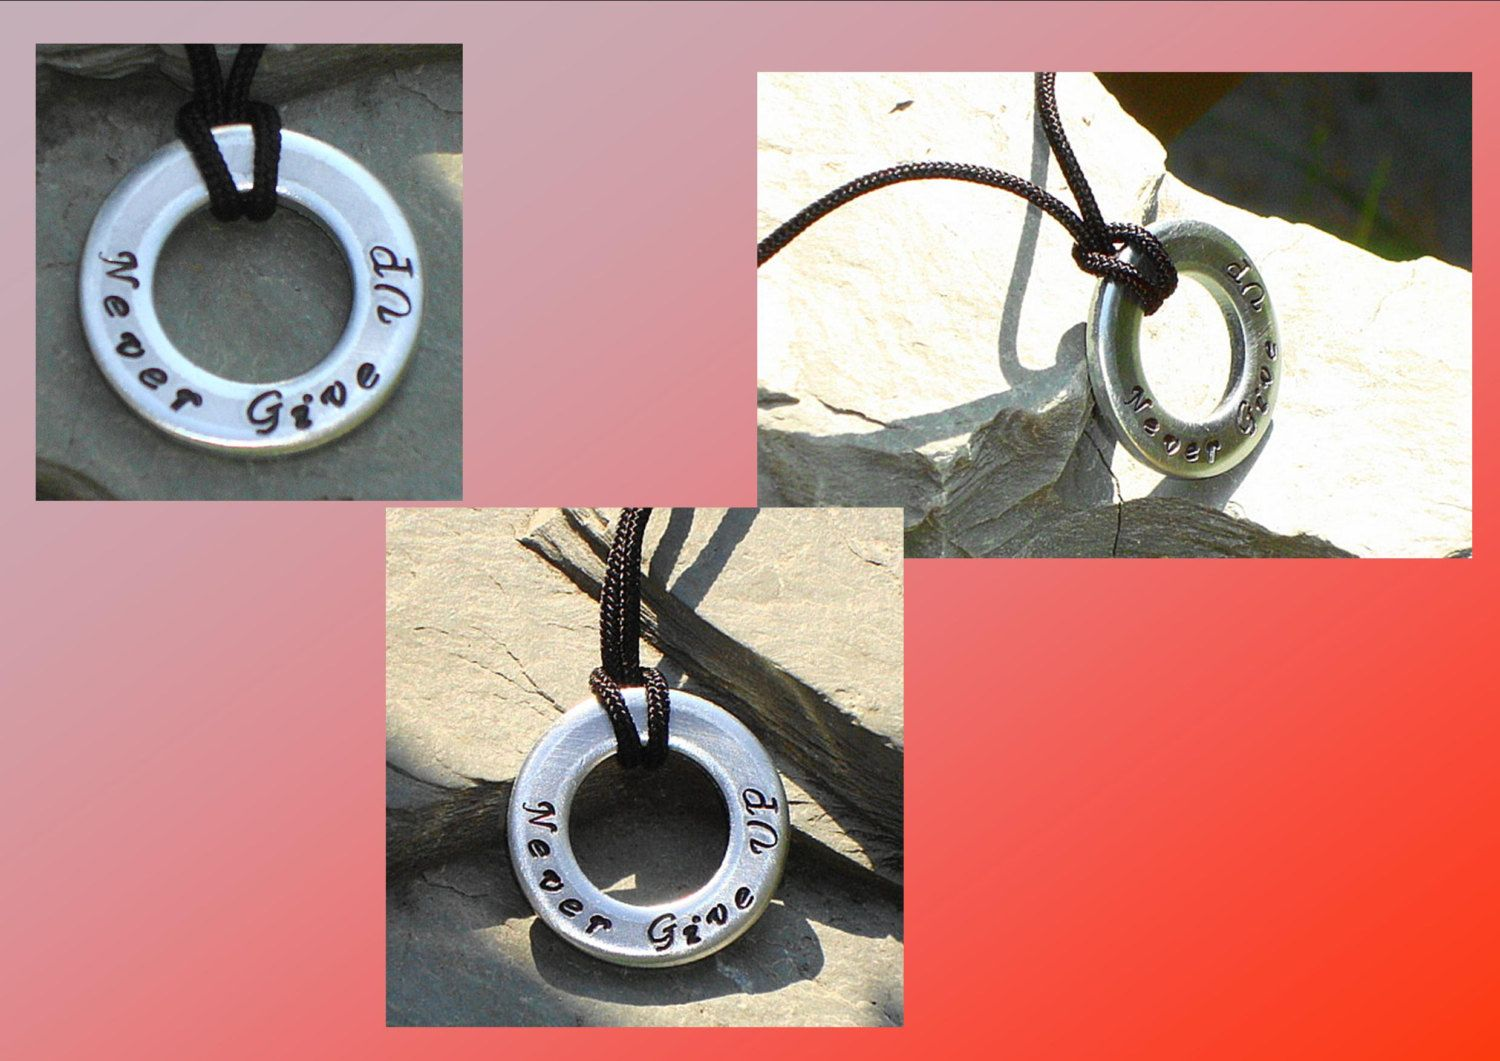 Mens washer pendant steel washer necklace metal stamped washer mens washer pendant steel washer necklace metal stamped washer pendant men masculine male jewelry mozeypictures Gallery